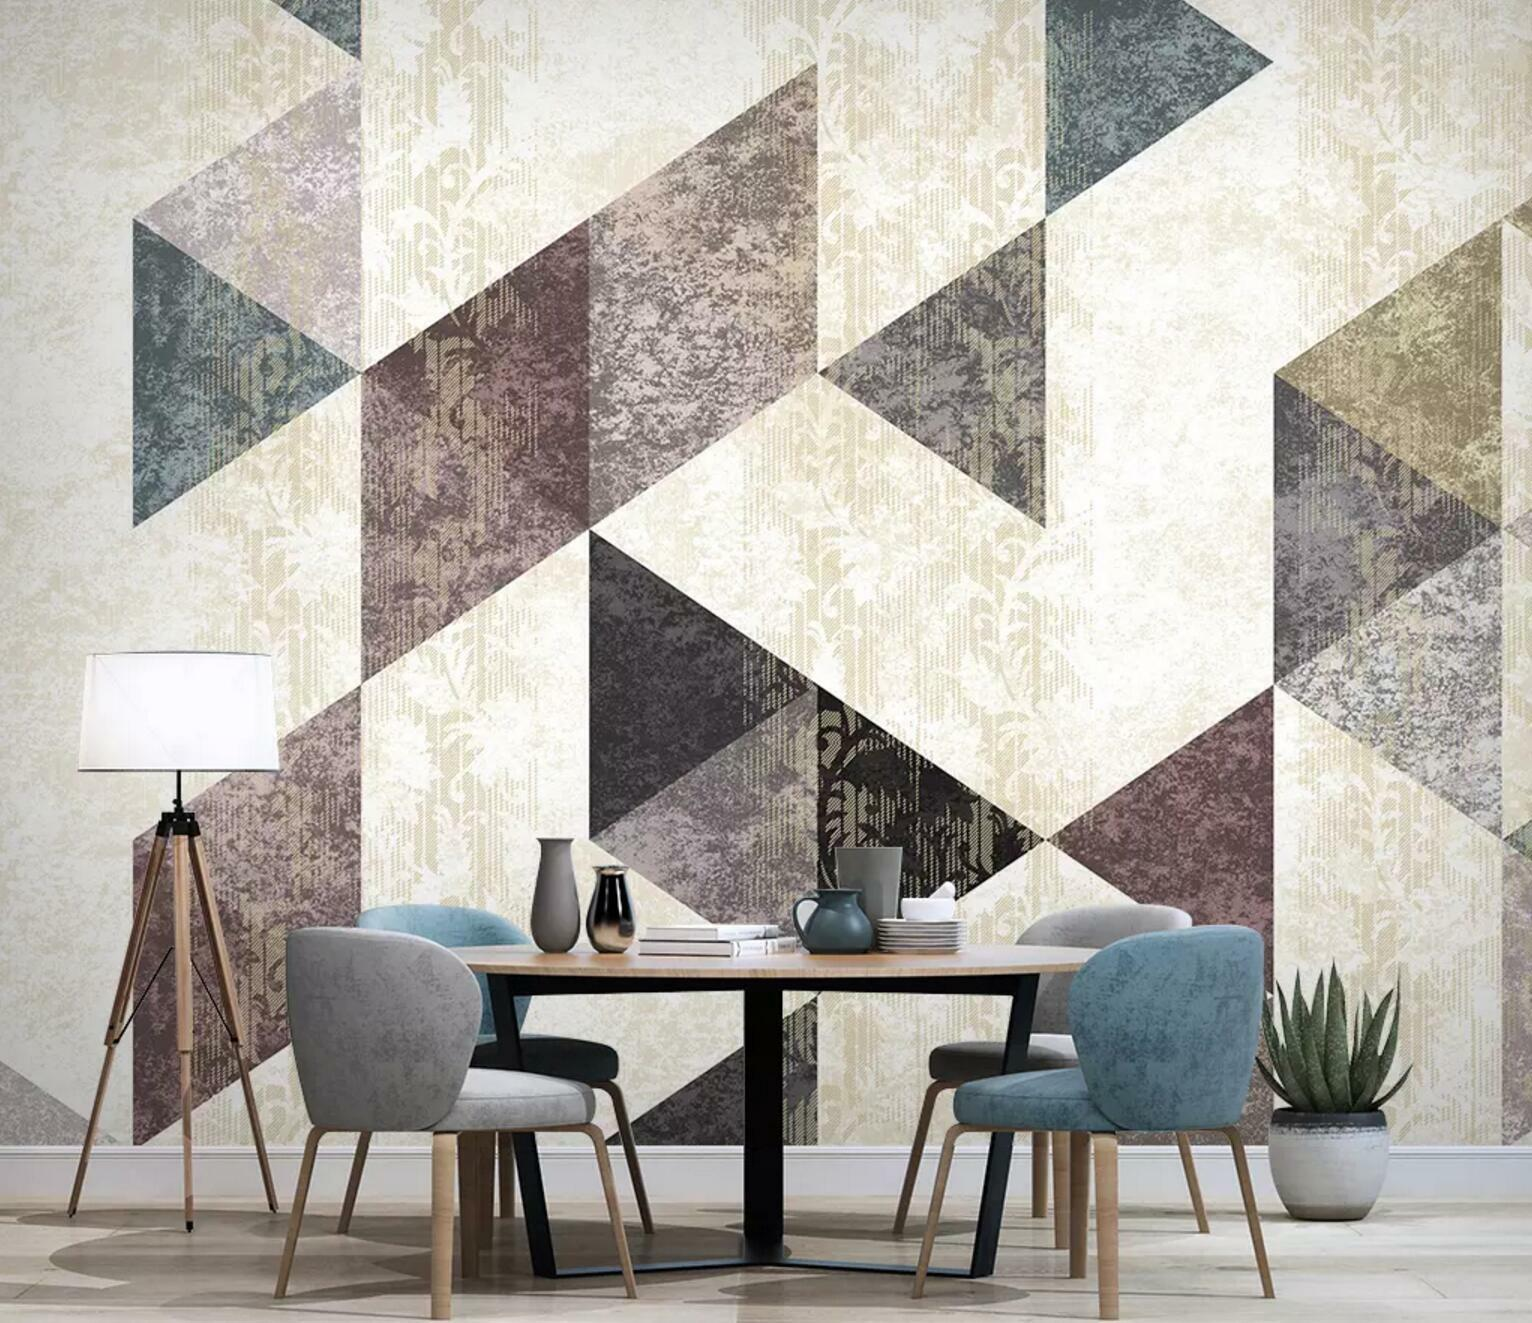 3D Floral Triangle 62 Wall Paper Exclusive MXY Wallpaper Mural Decal Indoor wall